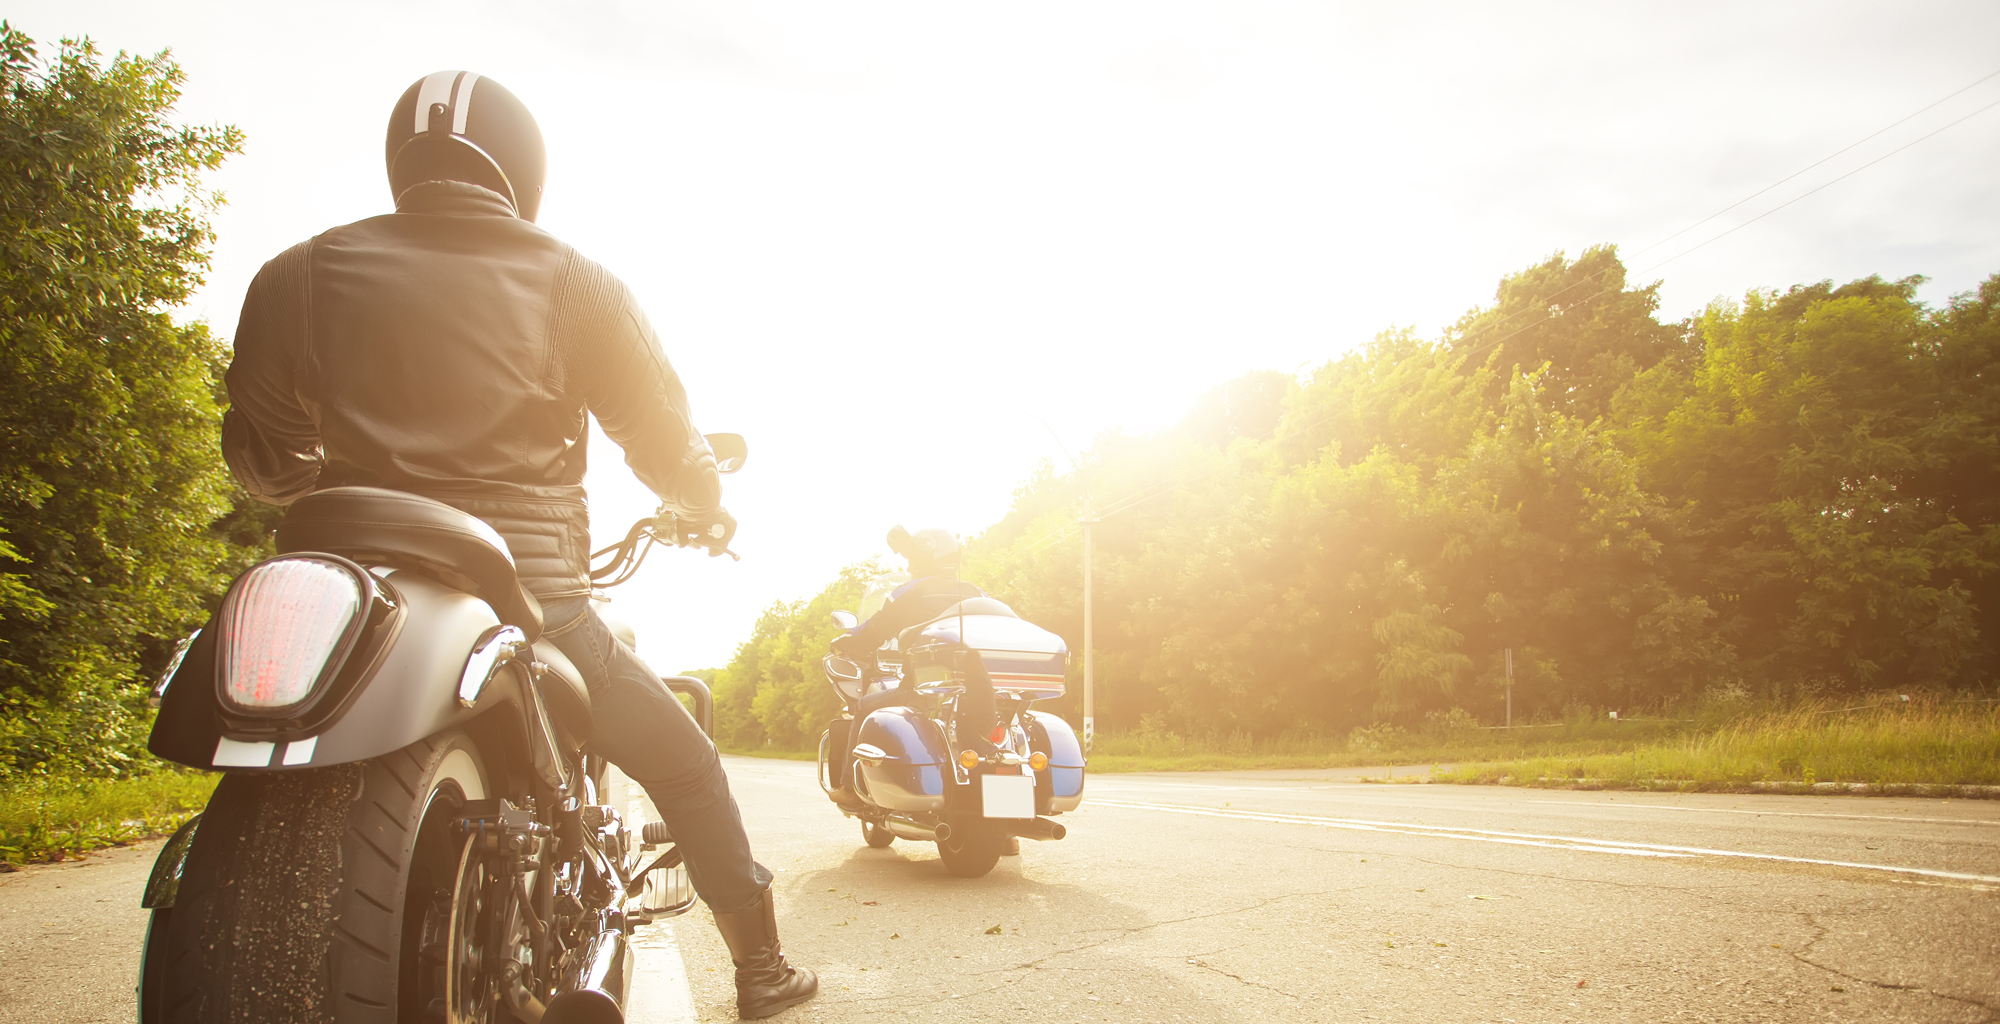 Five ways to support motorcycle safety in your community